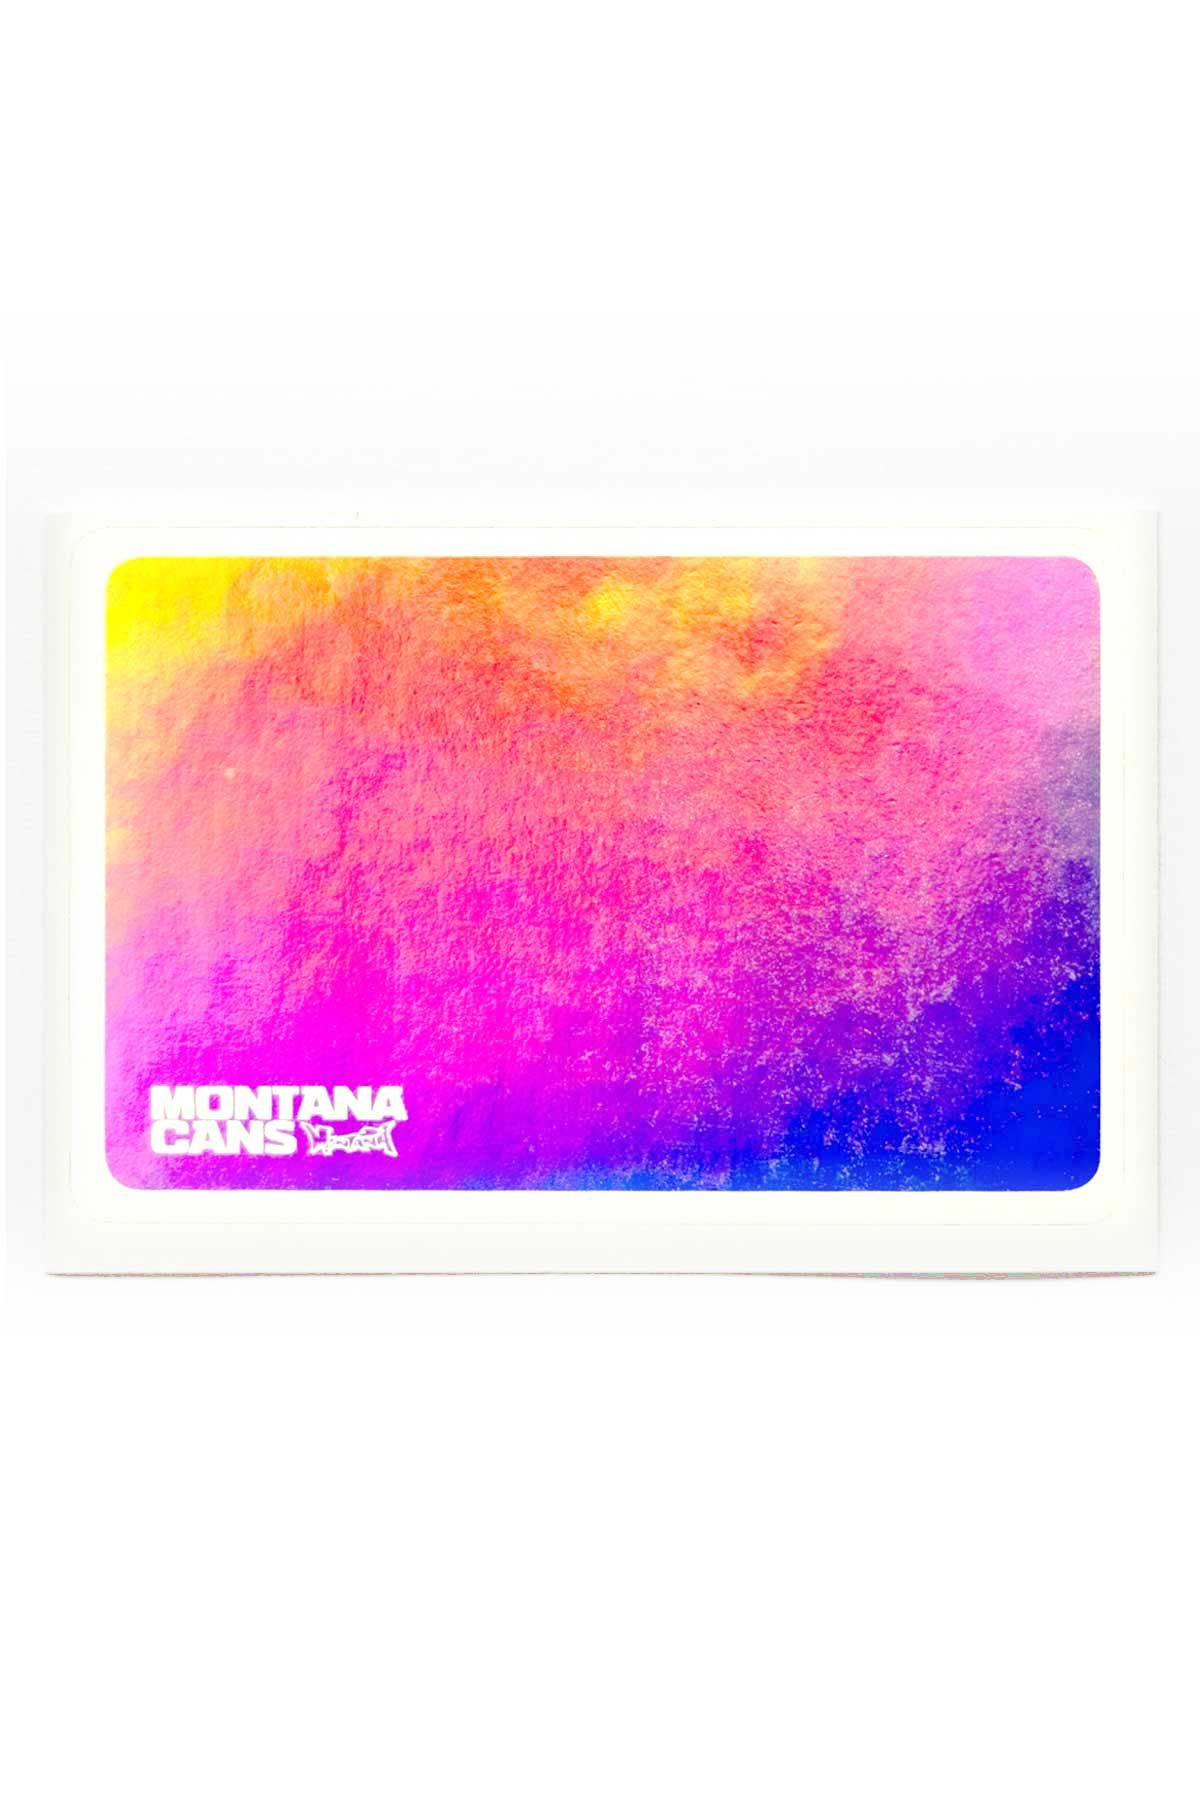 Montana HOLOGRAM Sticker